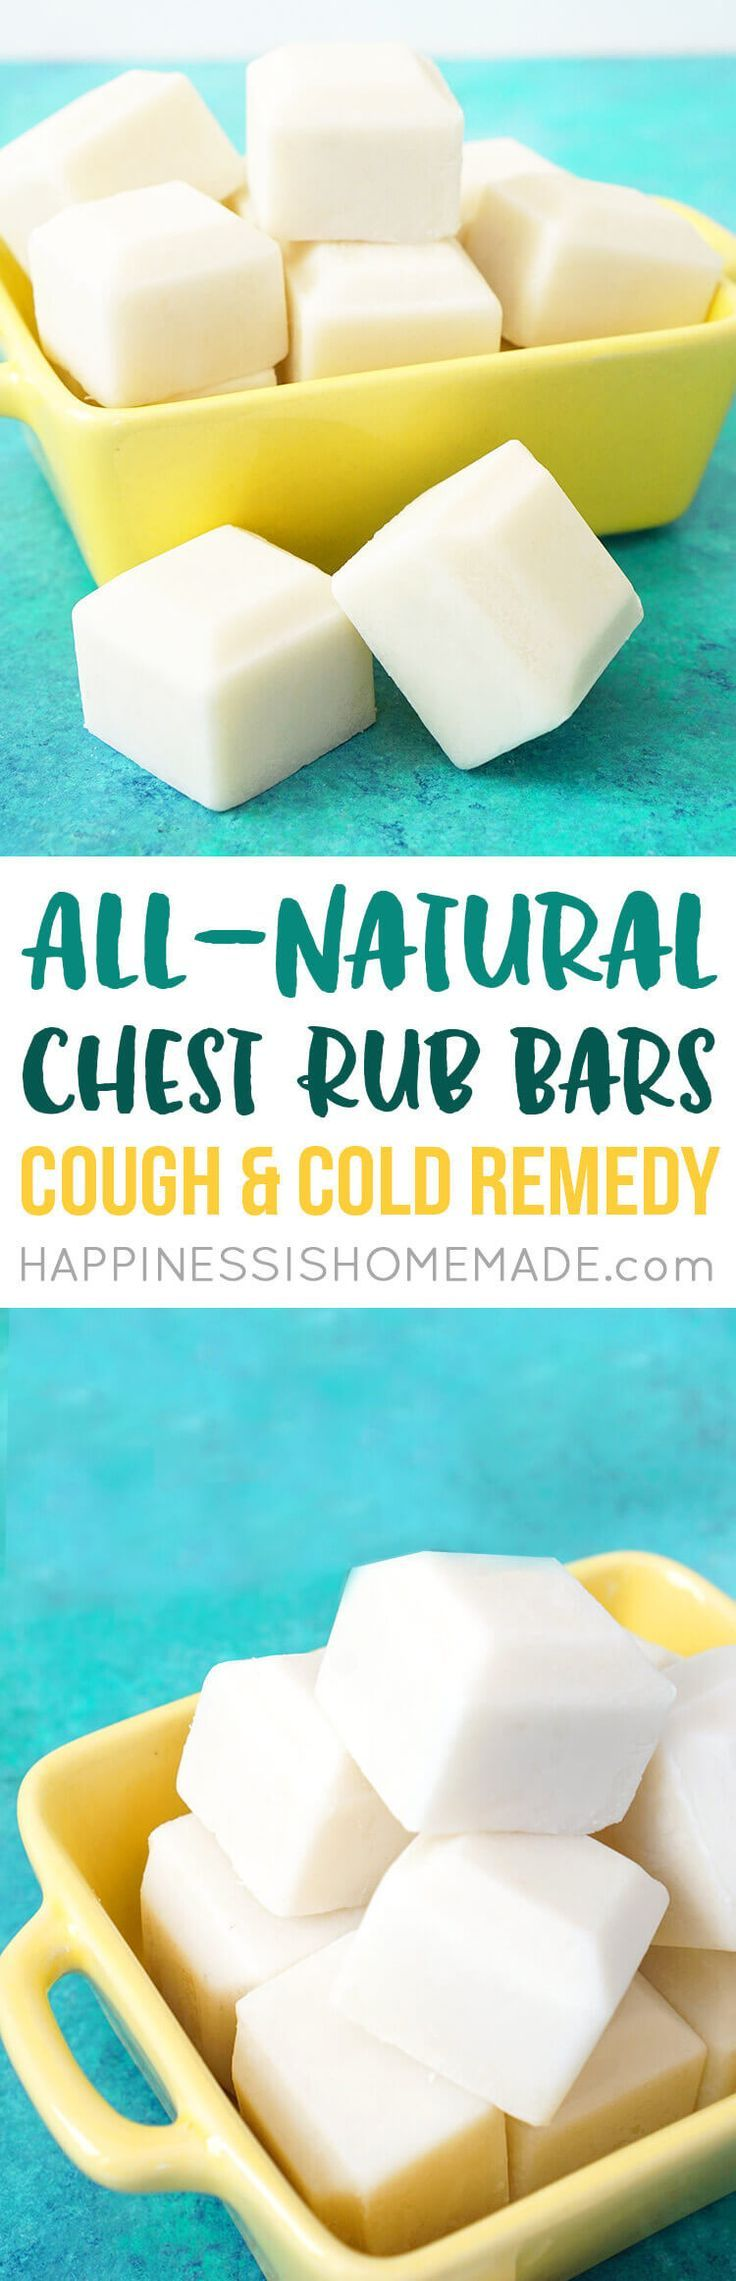 All-Natural Chest Rub Bars: Cough & Cold Remedy -These DIY chest rub bars are a healthy homemade cold remedy for coughing and congestion. Made with all-natural and non-toxic ingredients including shea butter, coconut oil, beeswax, and essential oils, thes